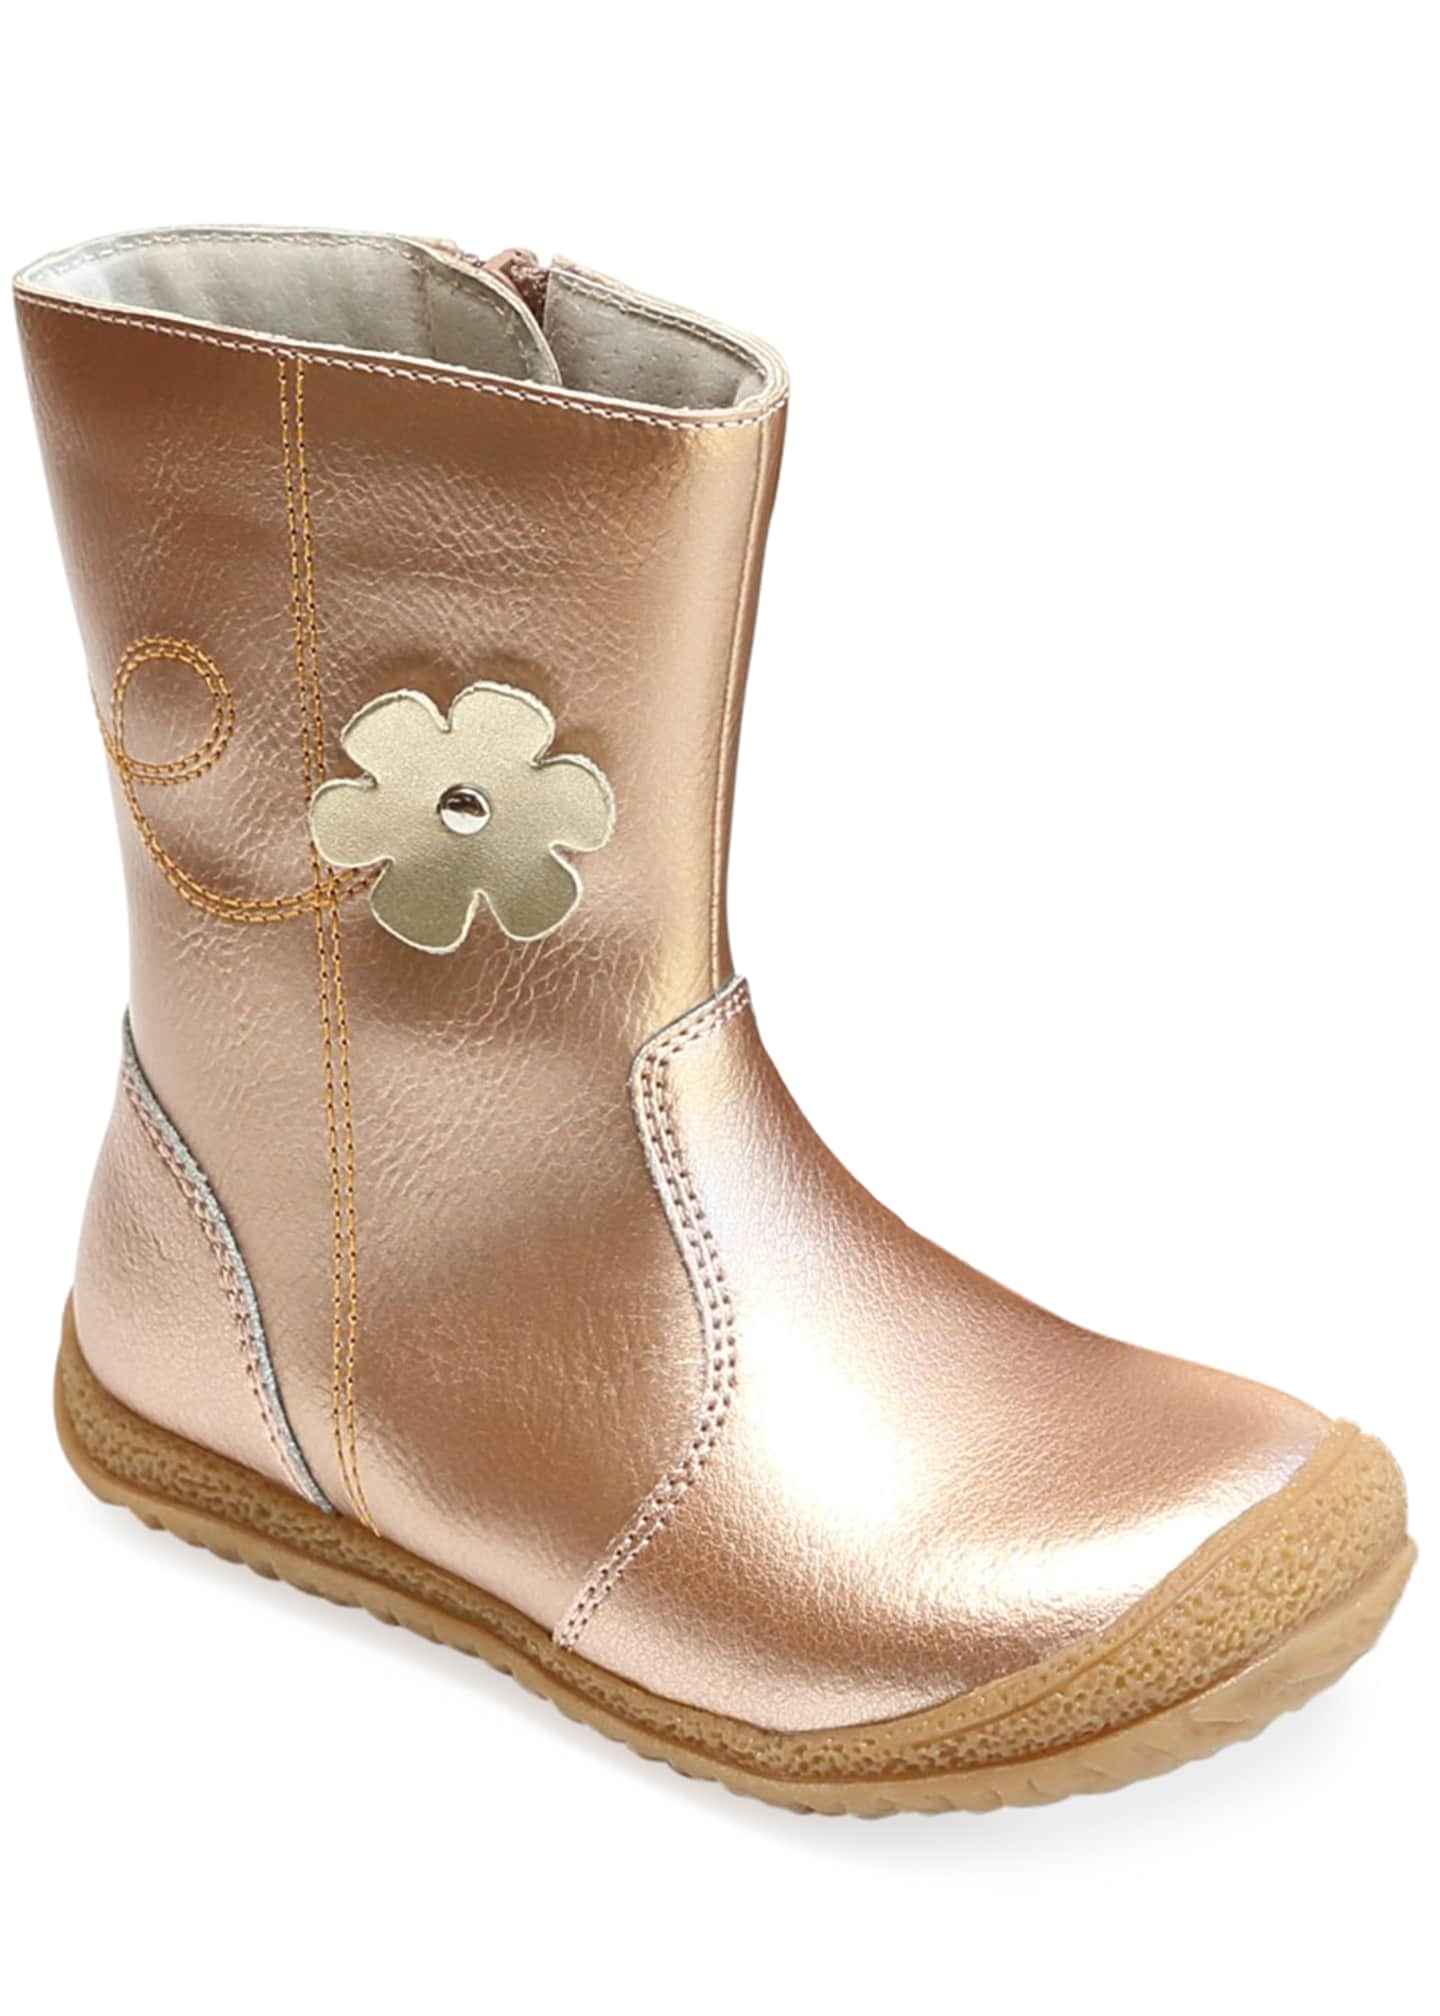 L'Amour Shoes Madison Metallic Leather Flower Mid-Top Boot,